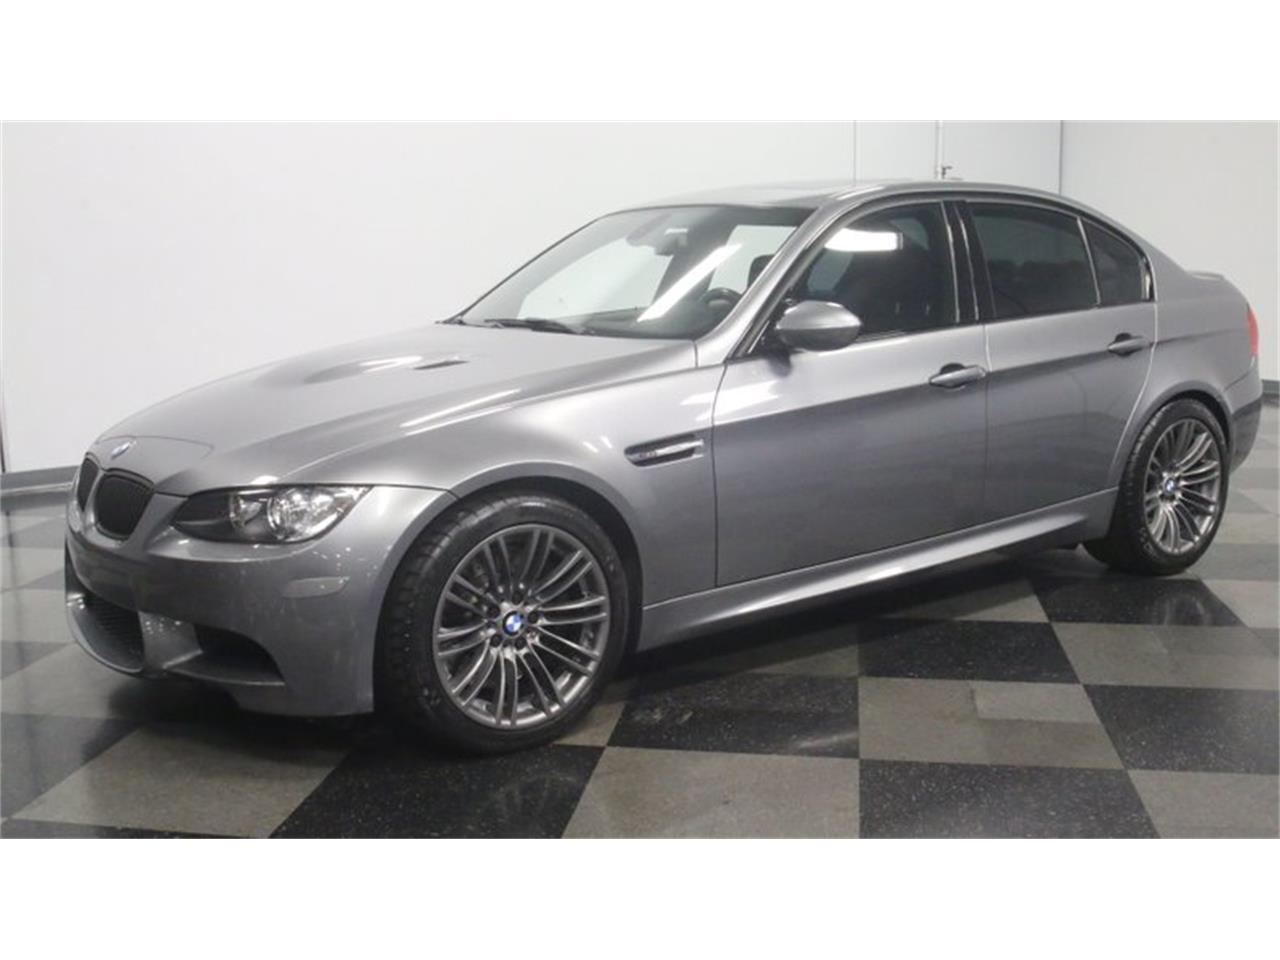 2010 BMW M3 for sale in Lithia Springs, GA – photo 6